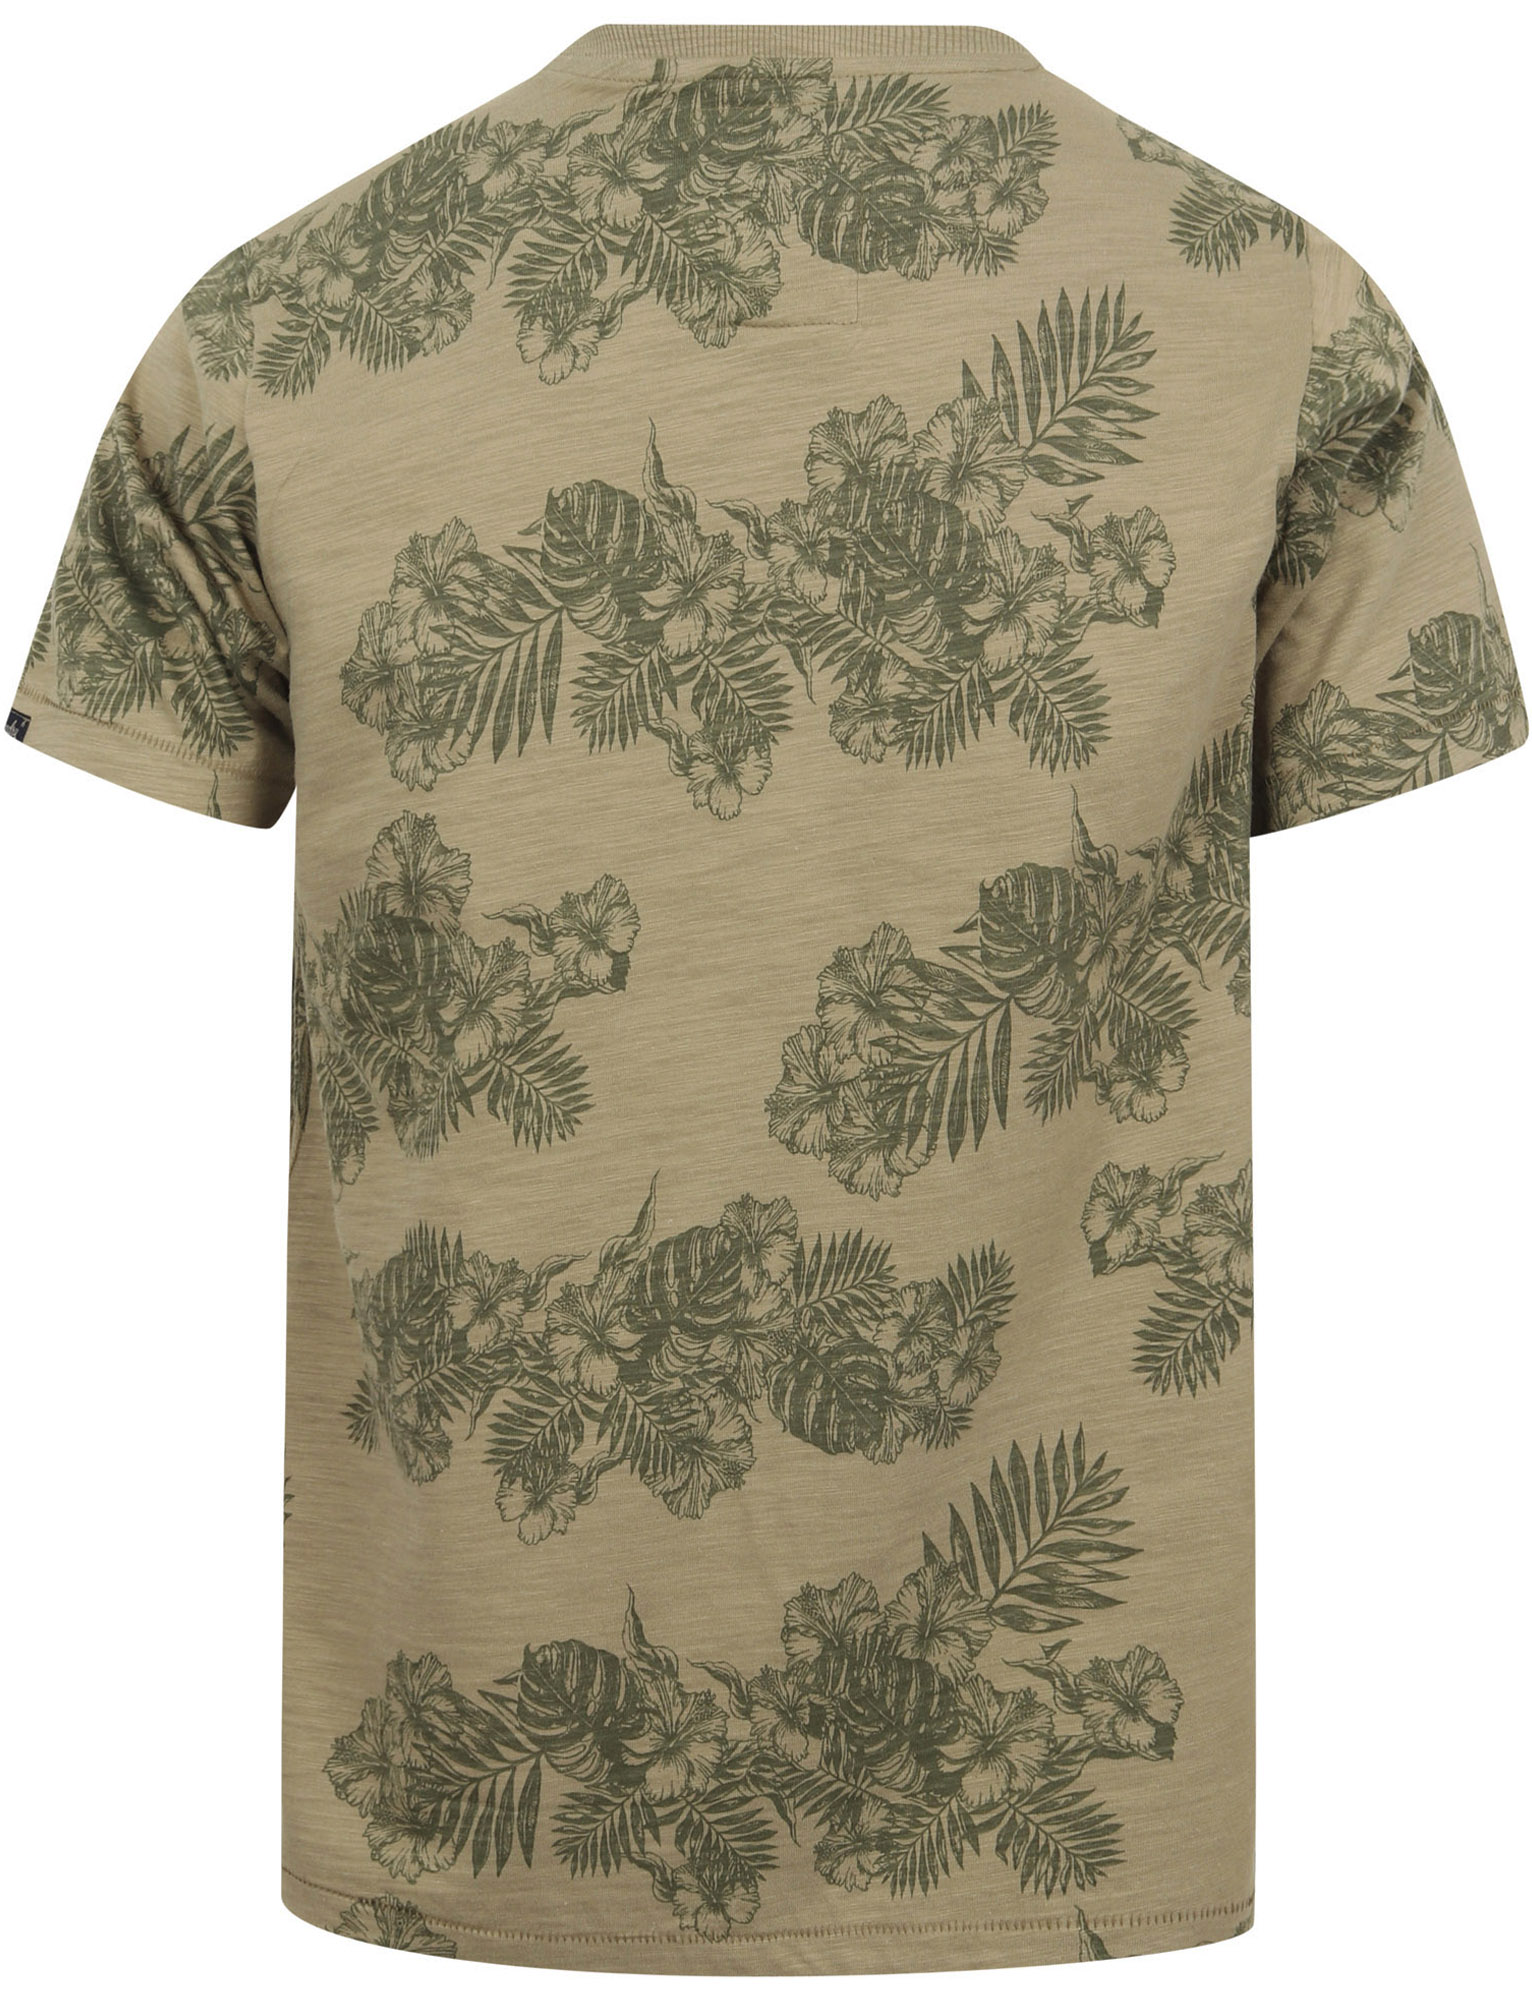 Tokyo-Laundry-Tropical-Print-Crew-Neck-T-Shirt-Hawaiian-Floral-Summer-Holiday thumbnail 13